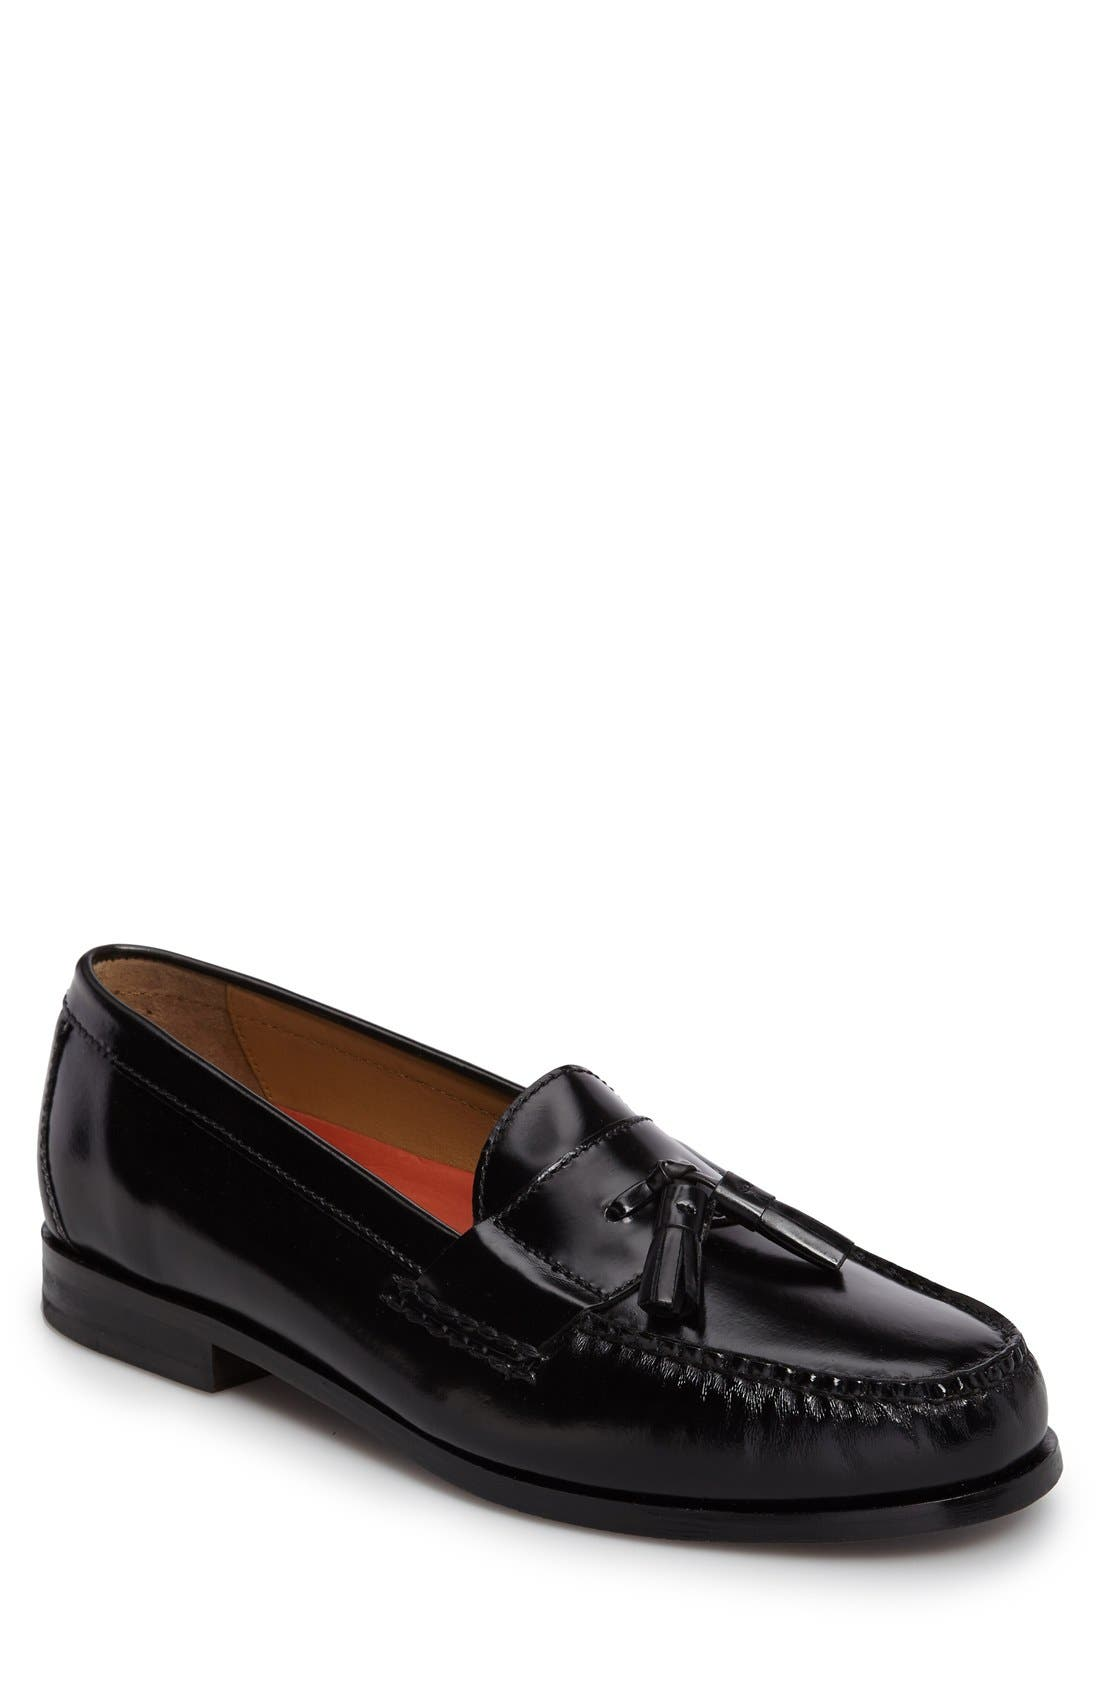 a6f70225aab Cole Haan  Pinch Grand  Tassel Loafer In Black Leather